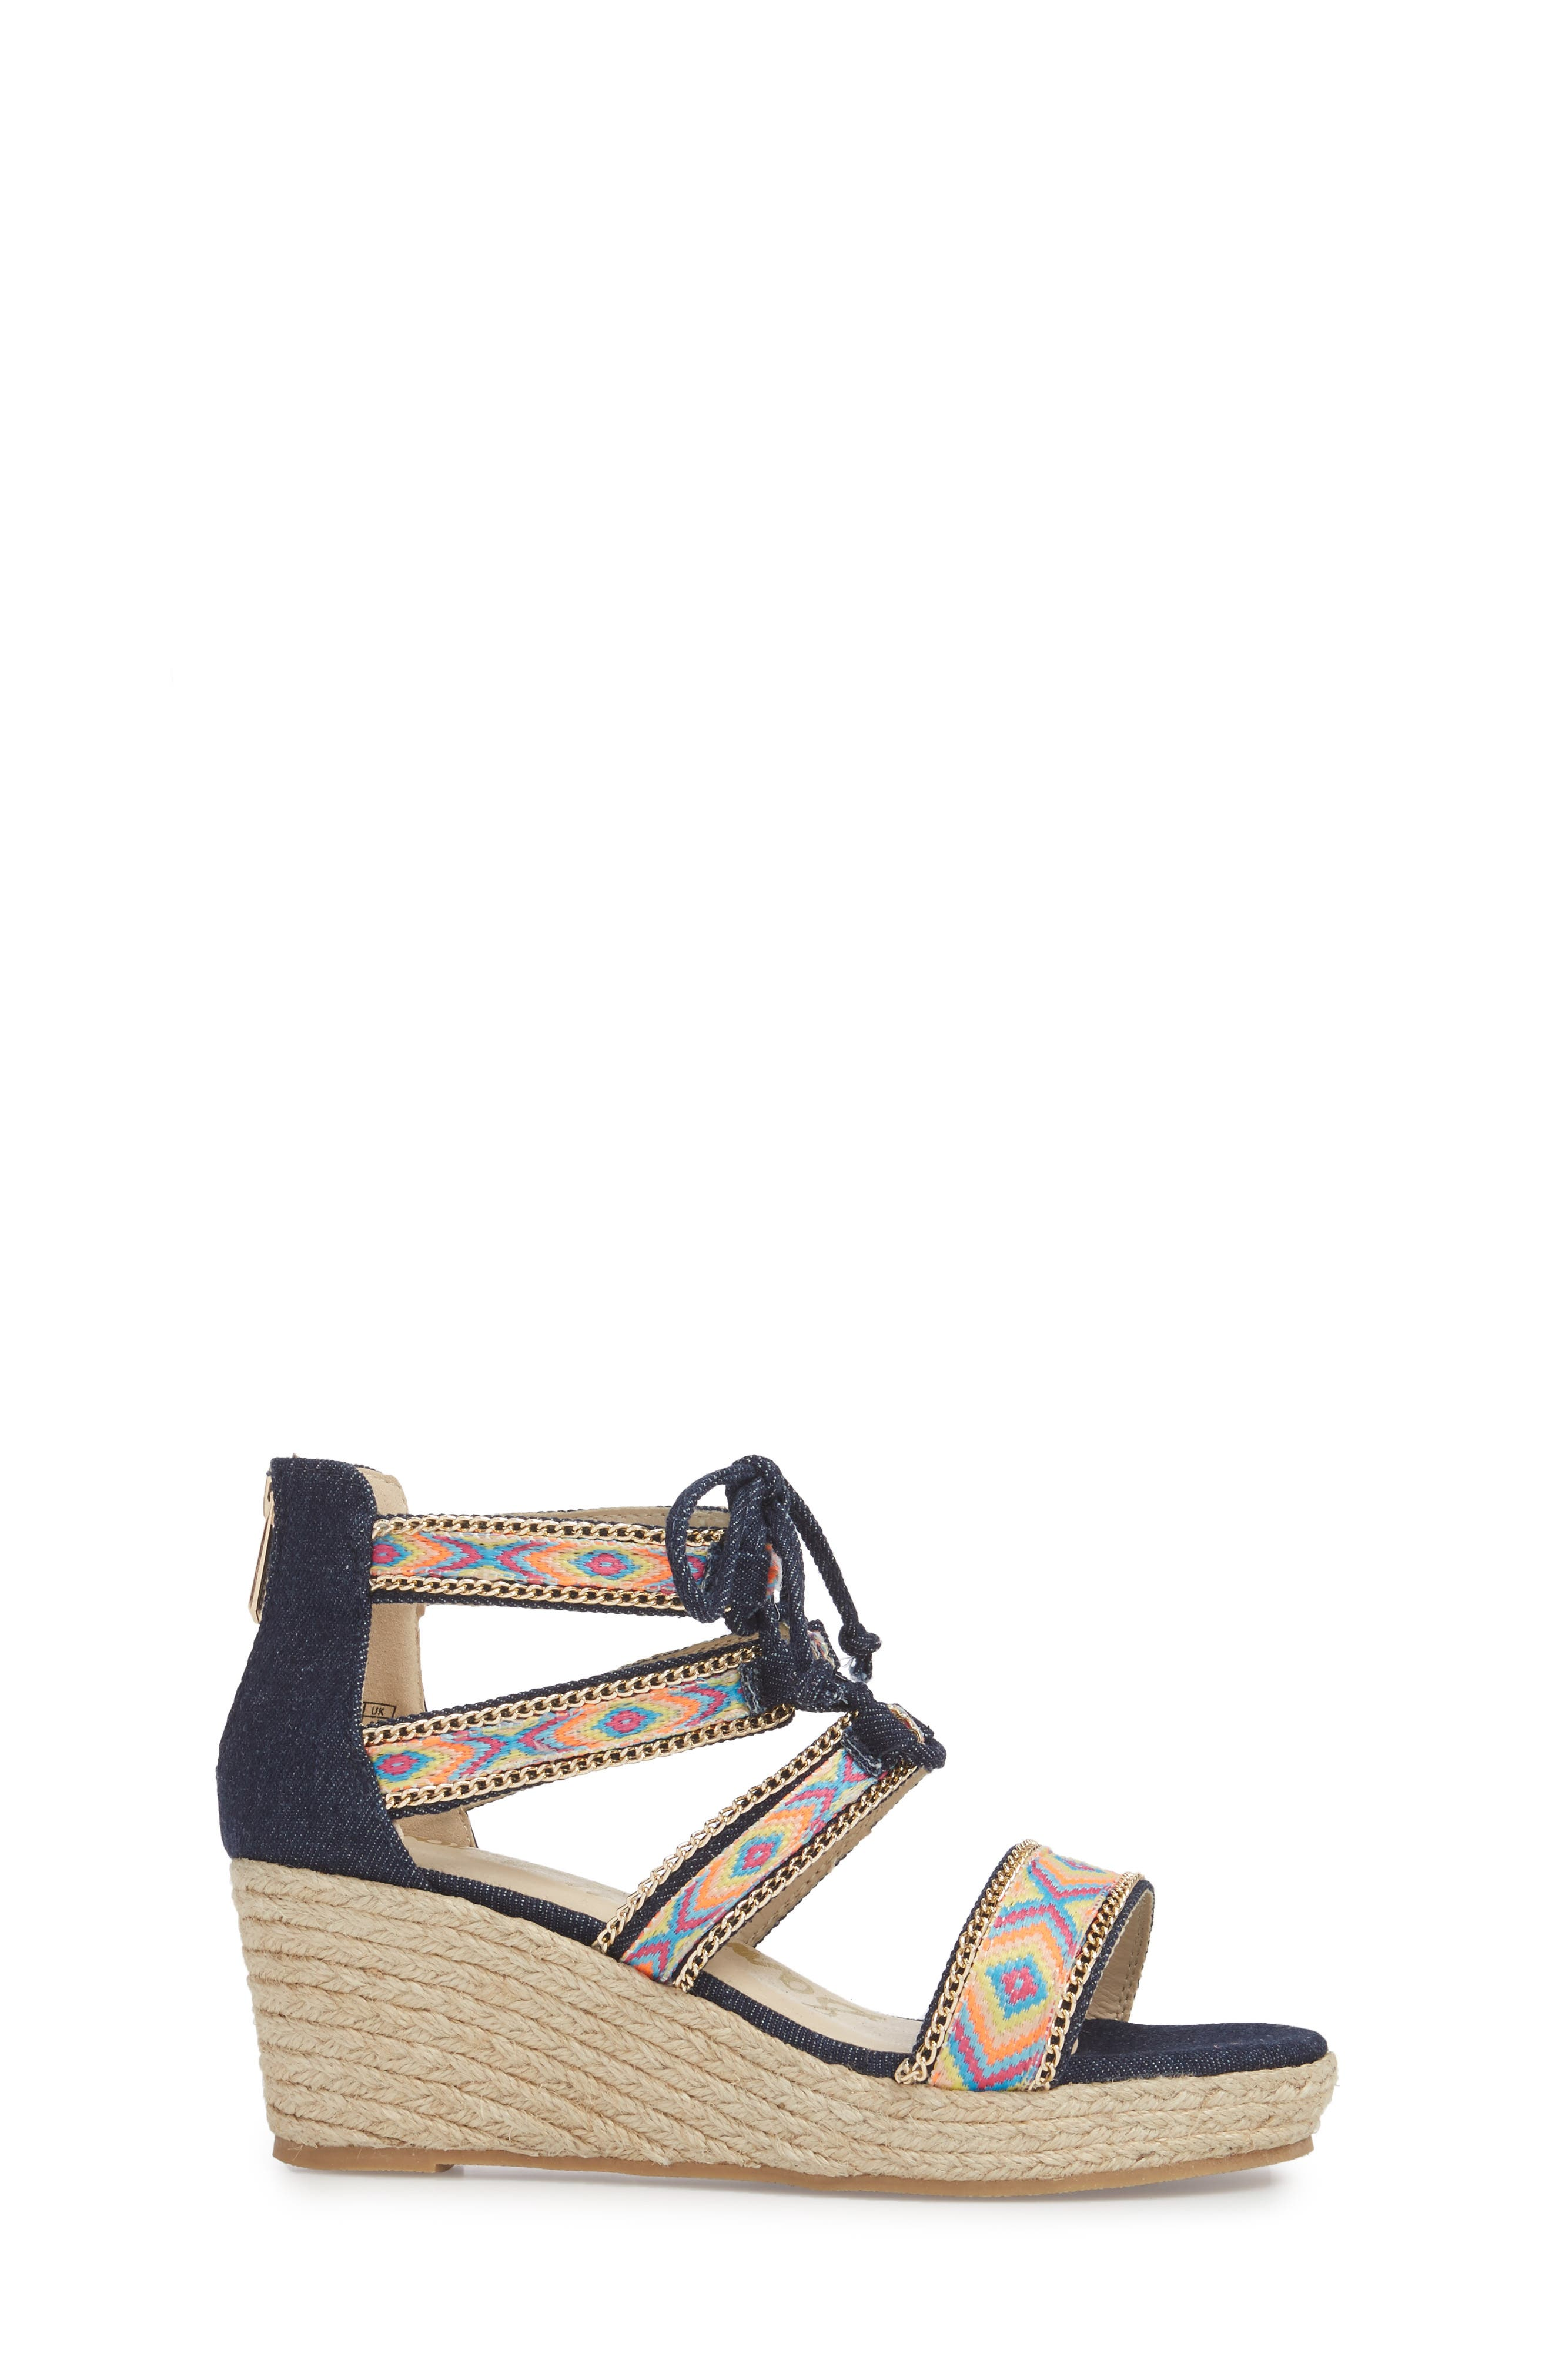 Elsie Dita Wedge Sandal,                             Alternate thumbnail 3, color,                             Dark Blue Fabric